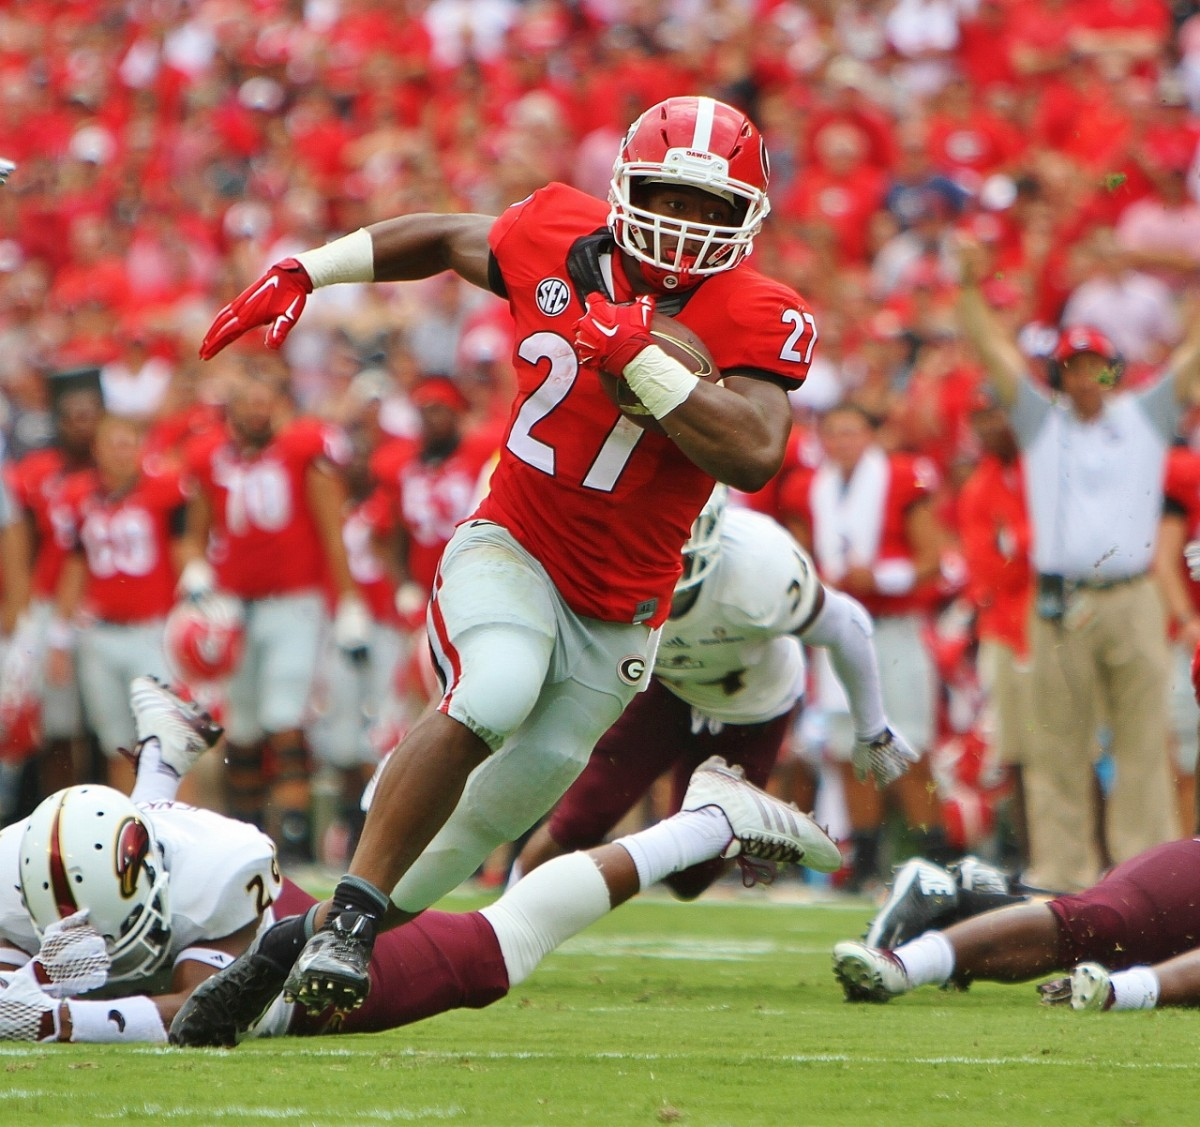 Nick Chubb TD - 2nd QTR - ULM vs. UGA - Sept. 5, 2015. Photo by Roy Saye.